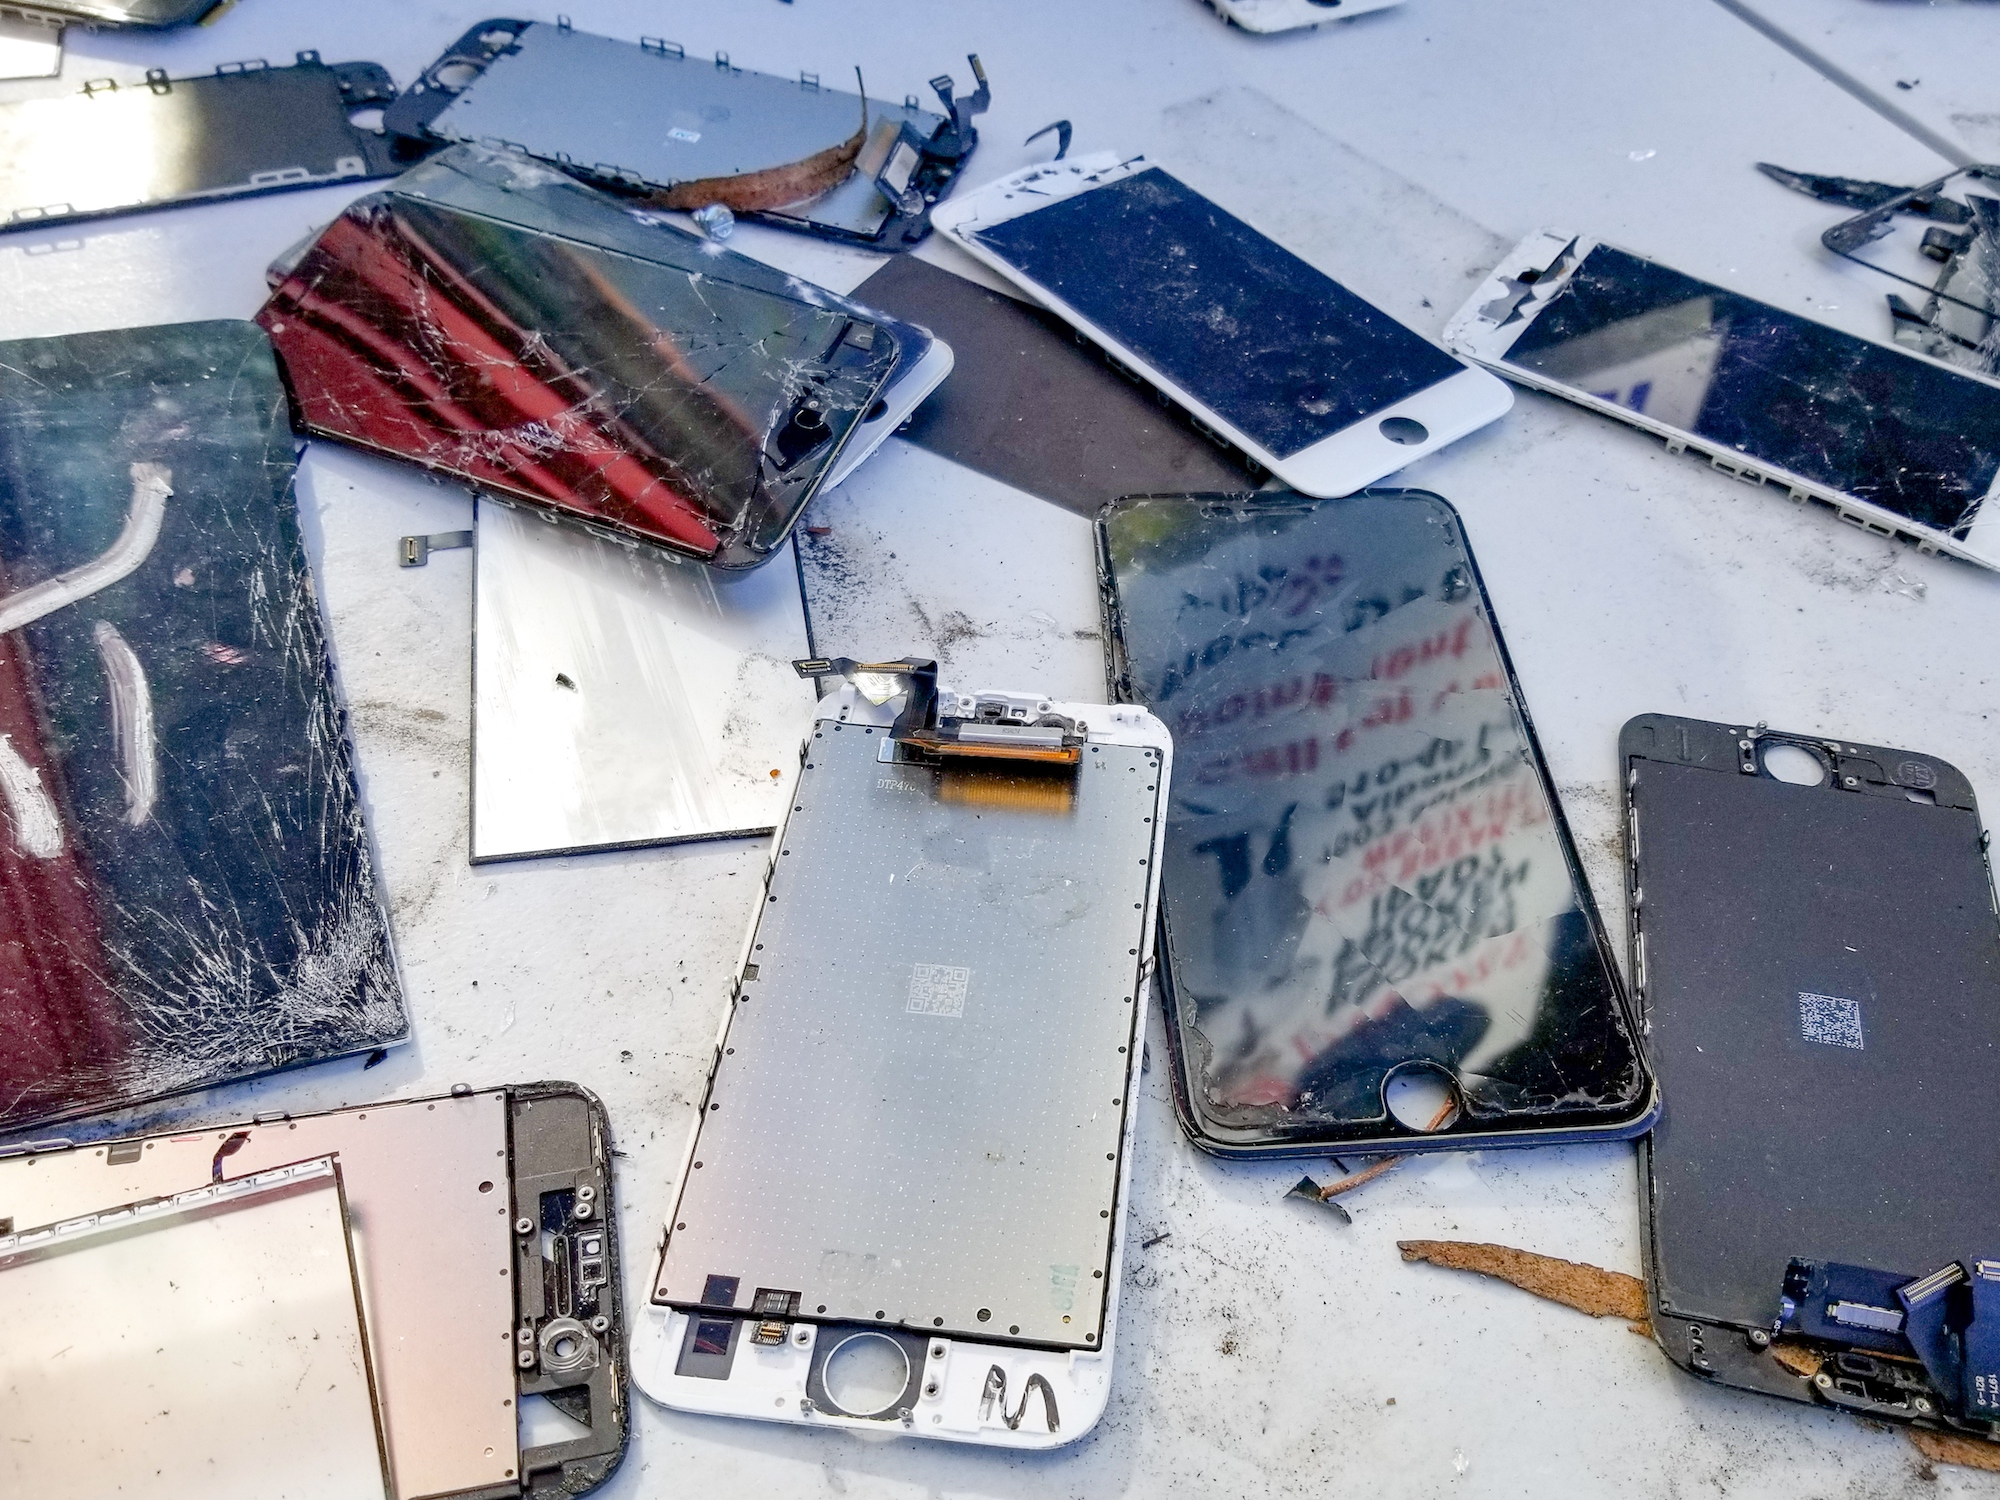 a close-up photo of broken cell phones of various types